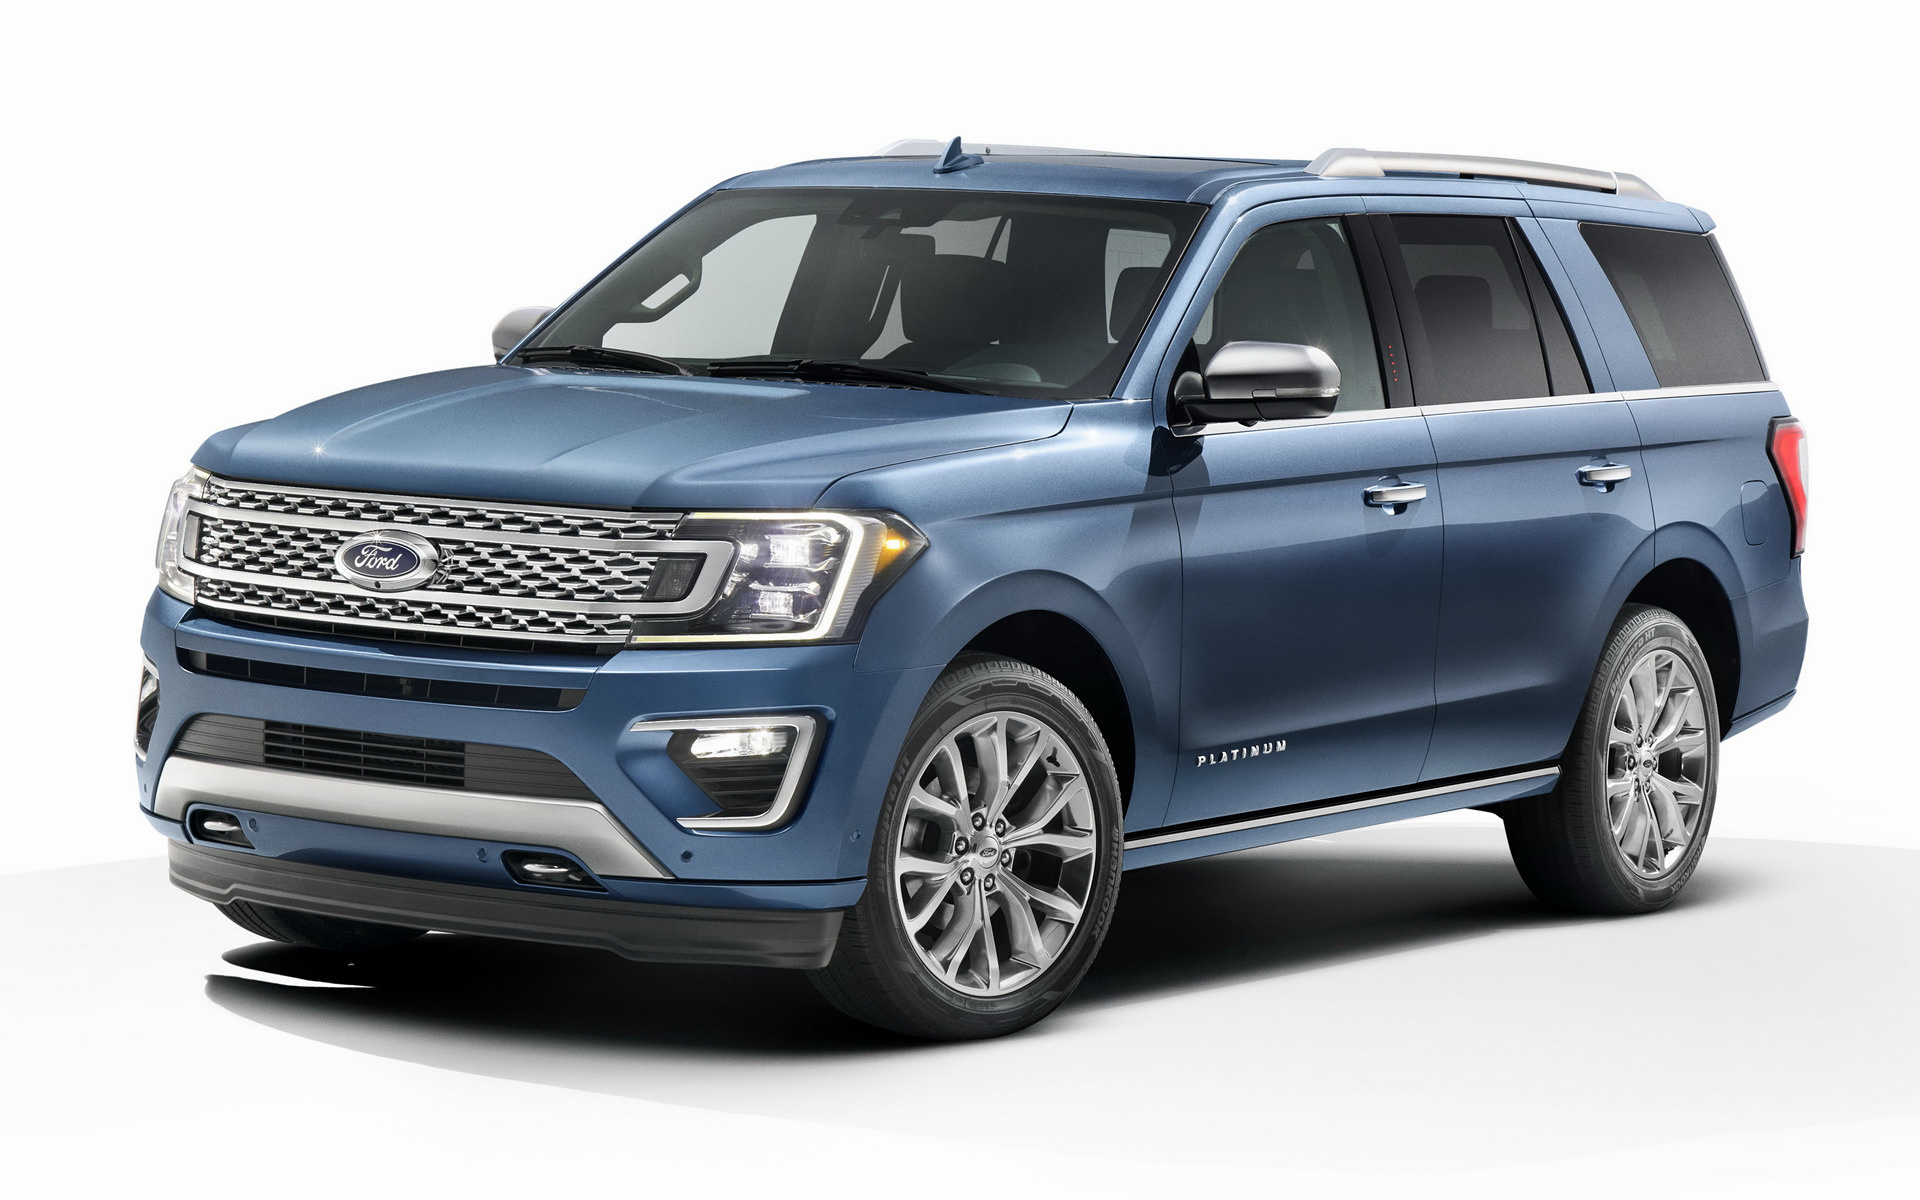 2018 ford expedition platinum wallpapers and hd images car pixel. Black Bedroom Furniture Sets. Home Design Ideas